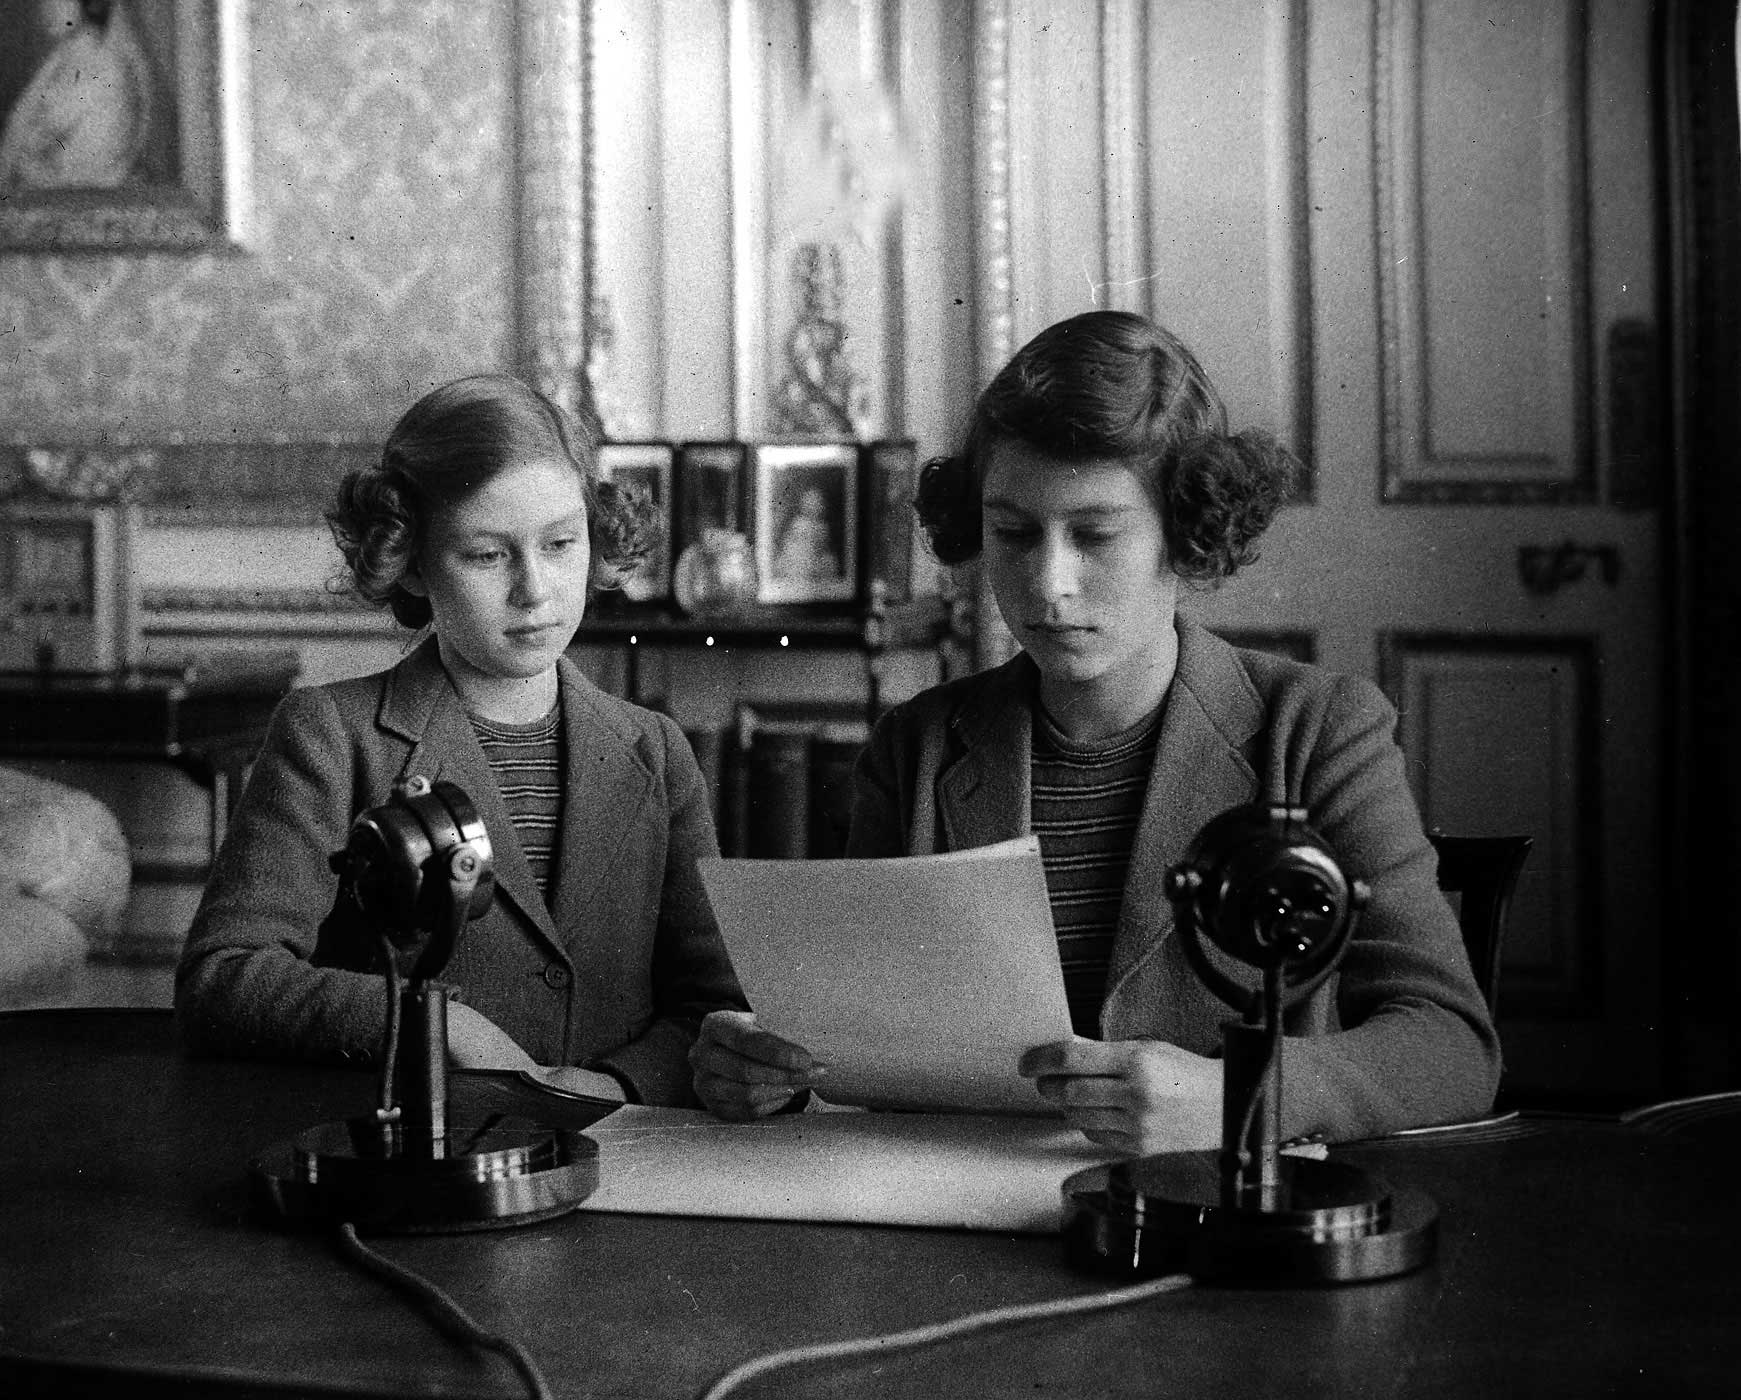 Princess Elizabeth (right) reads a broadcast in 1940 with her sister Princess Margaret at her side. The future Queen was making her first royal address to Britain and the Commonwealth during the BBC's Children's Hour. She sent her best wishes to all the children who had been sent overseas to Canada, Australia, New Zealand and the U.S. for safety during the war.